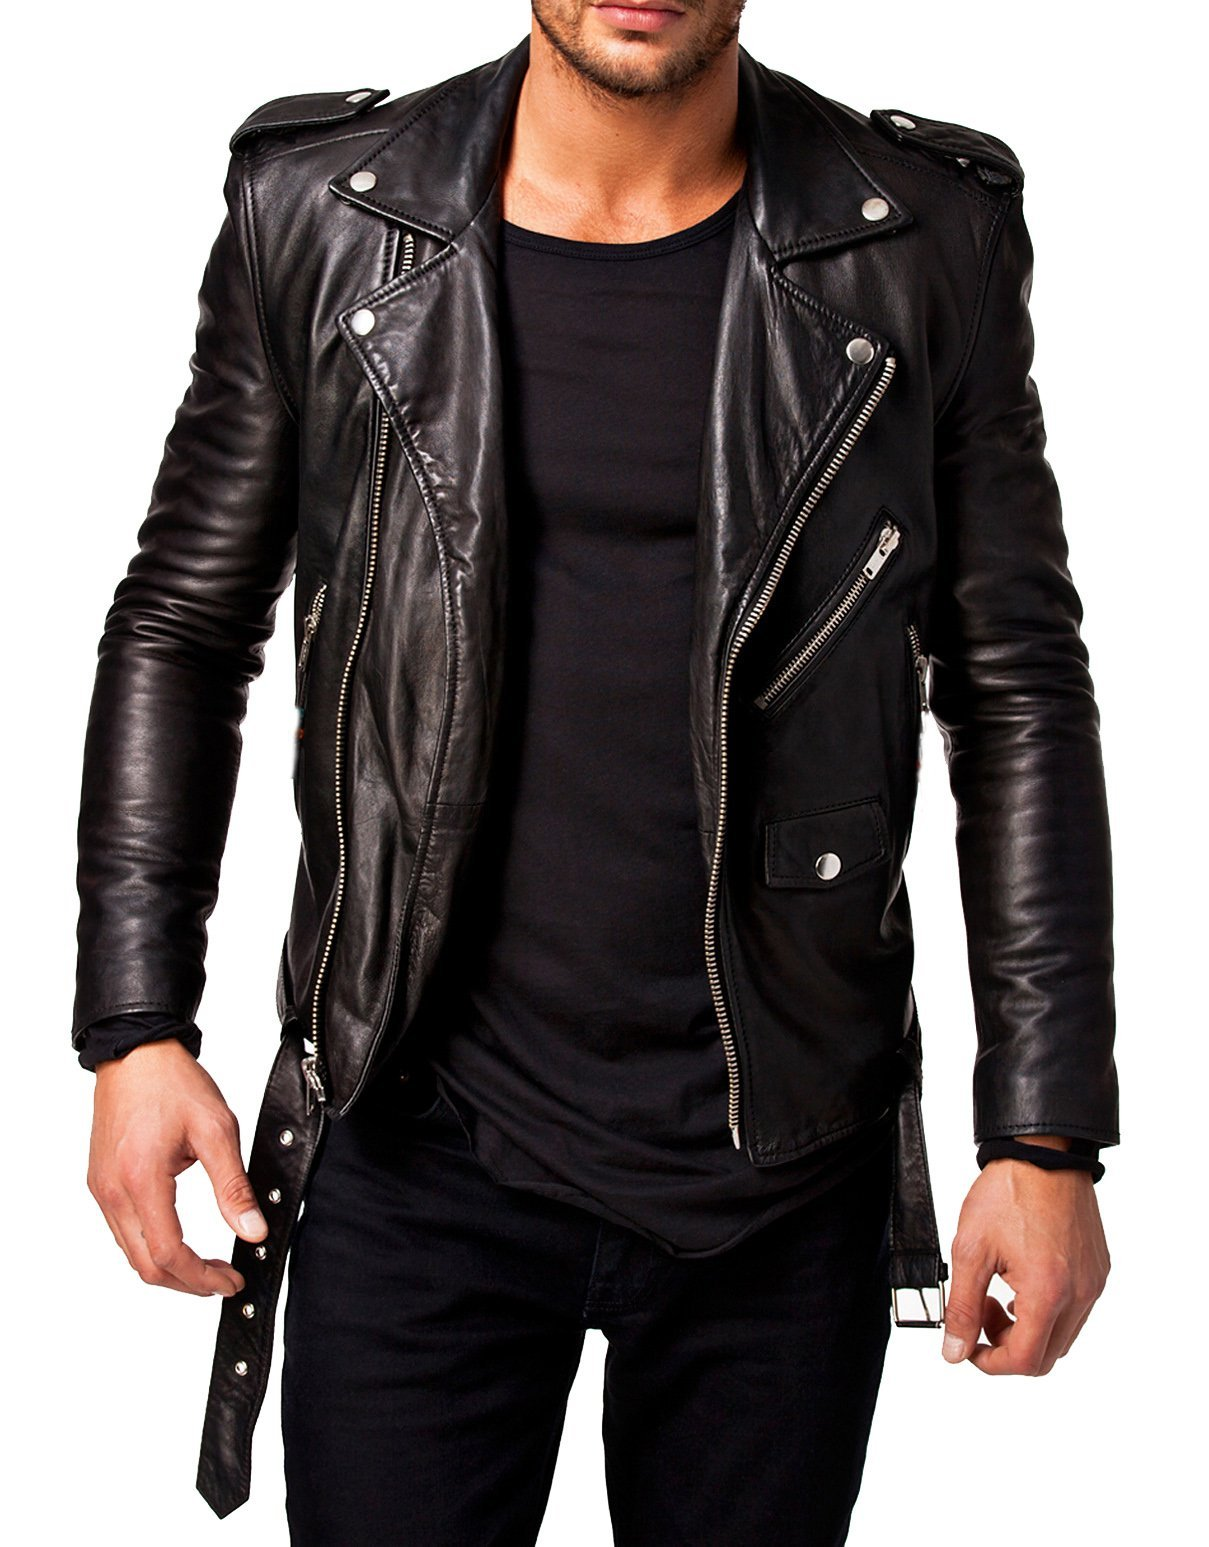 Best Seller Leather Men's Leather Jacket M Black by Best Seller Leather